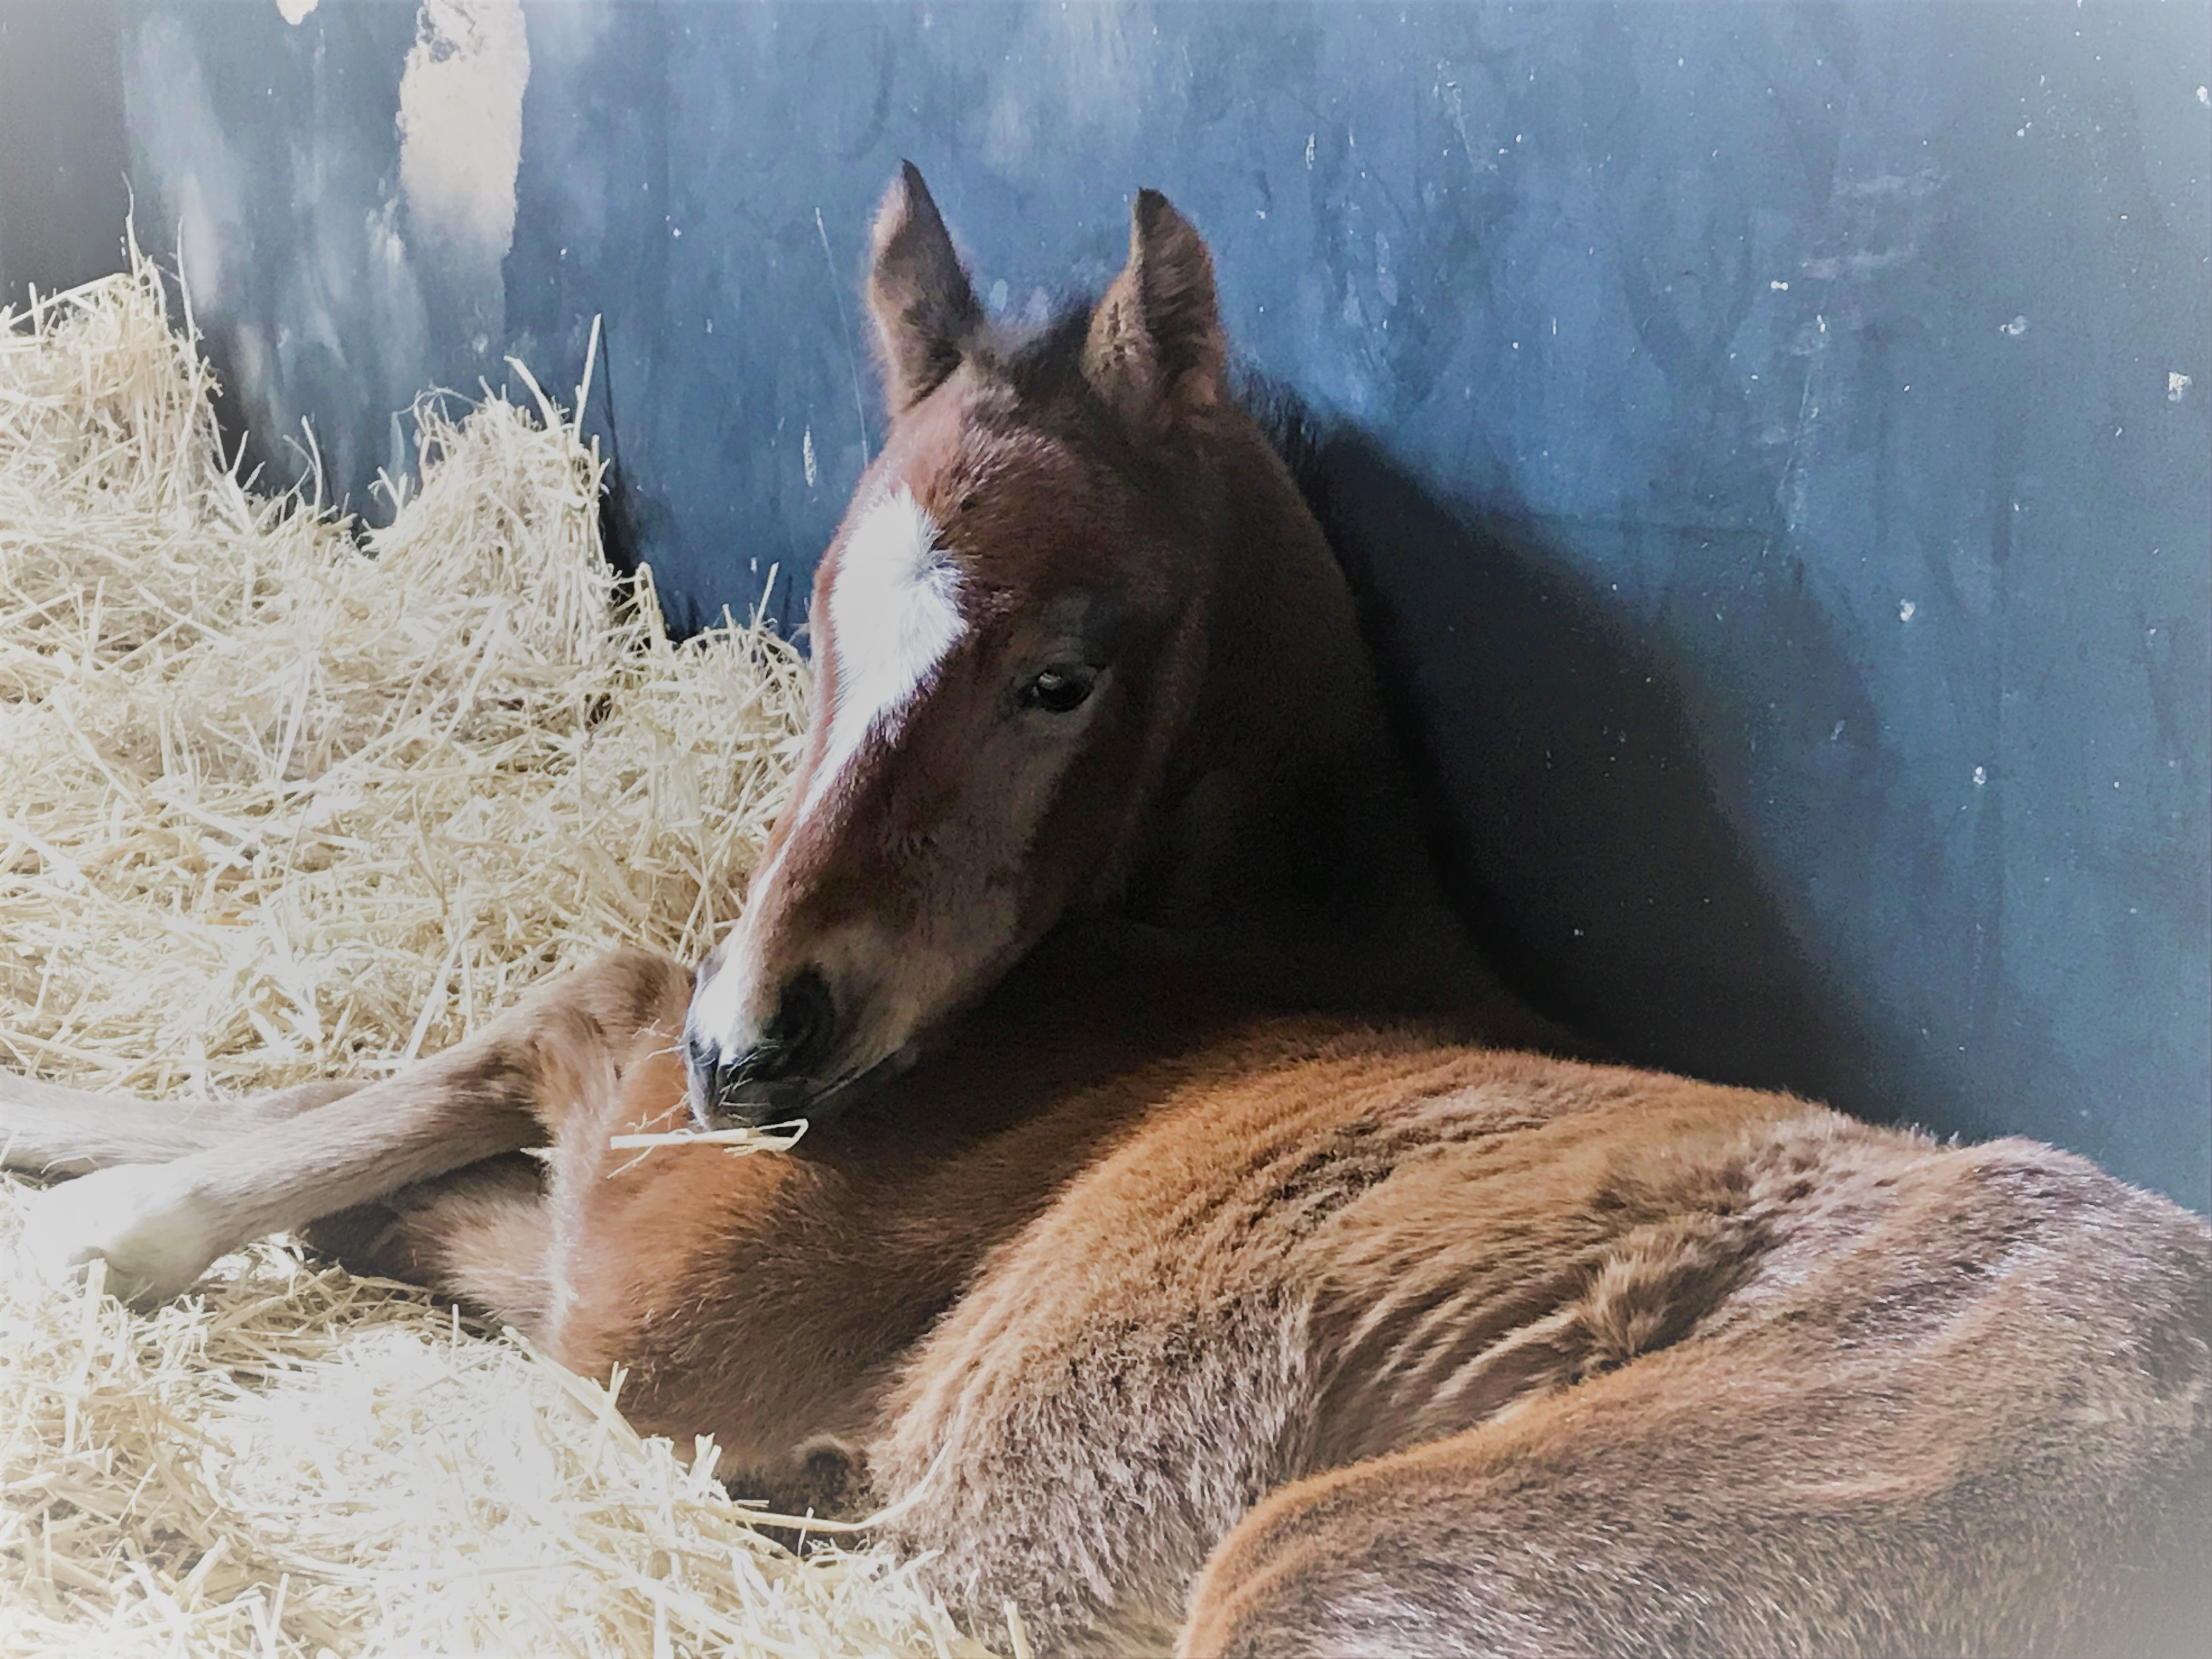 Eagle's first foal has landed